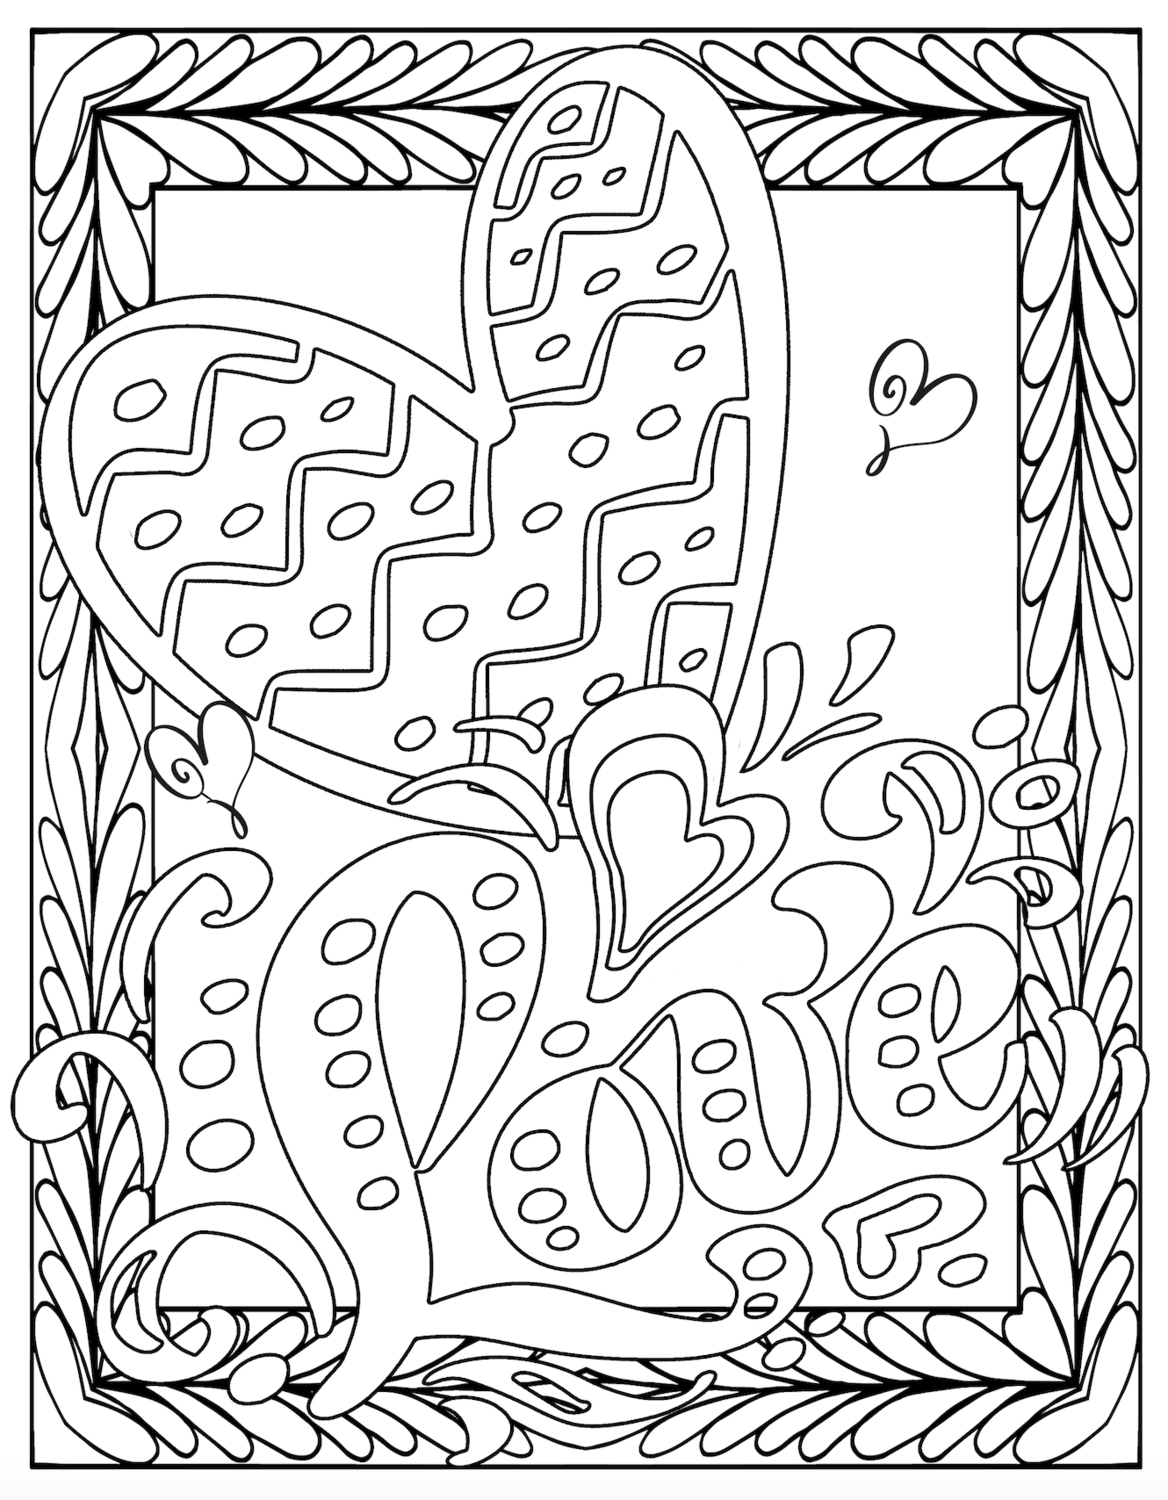 valentine day color pages valentine coloring pages best coloring pages for kids valentine day pages color